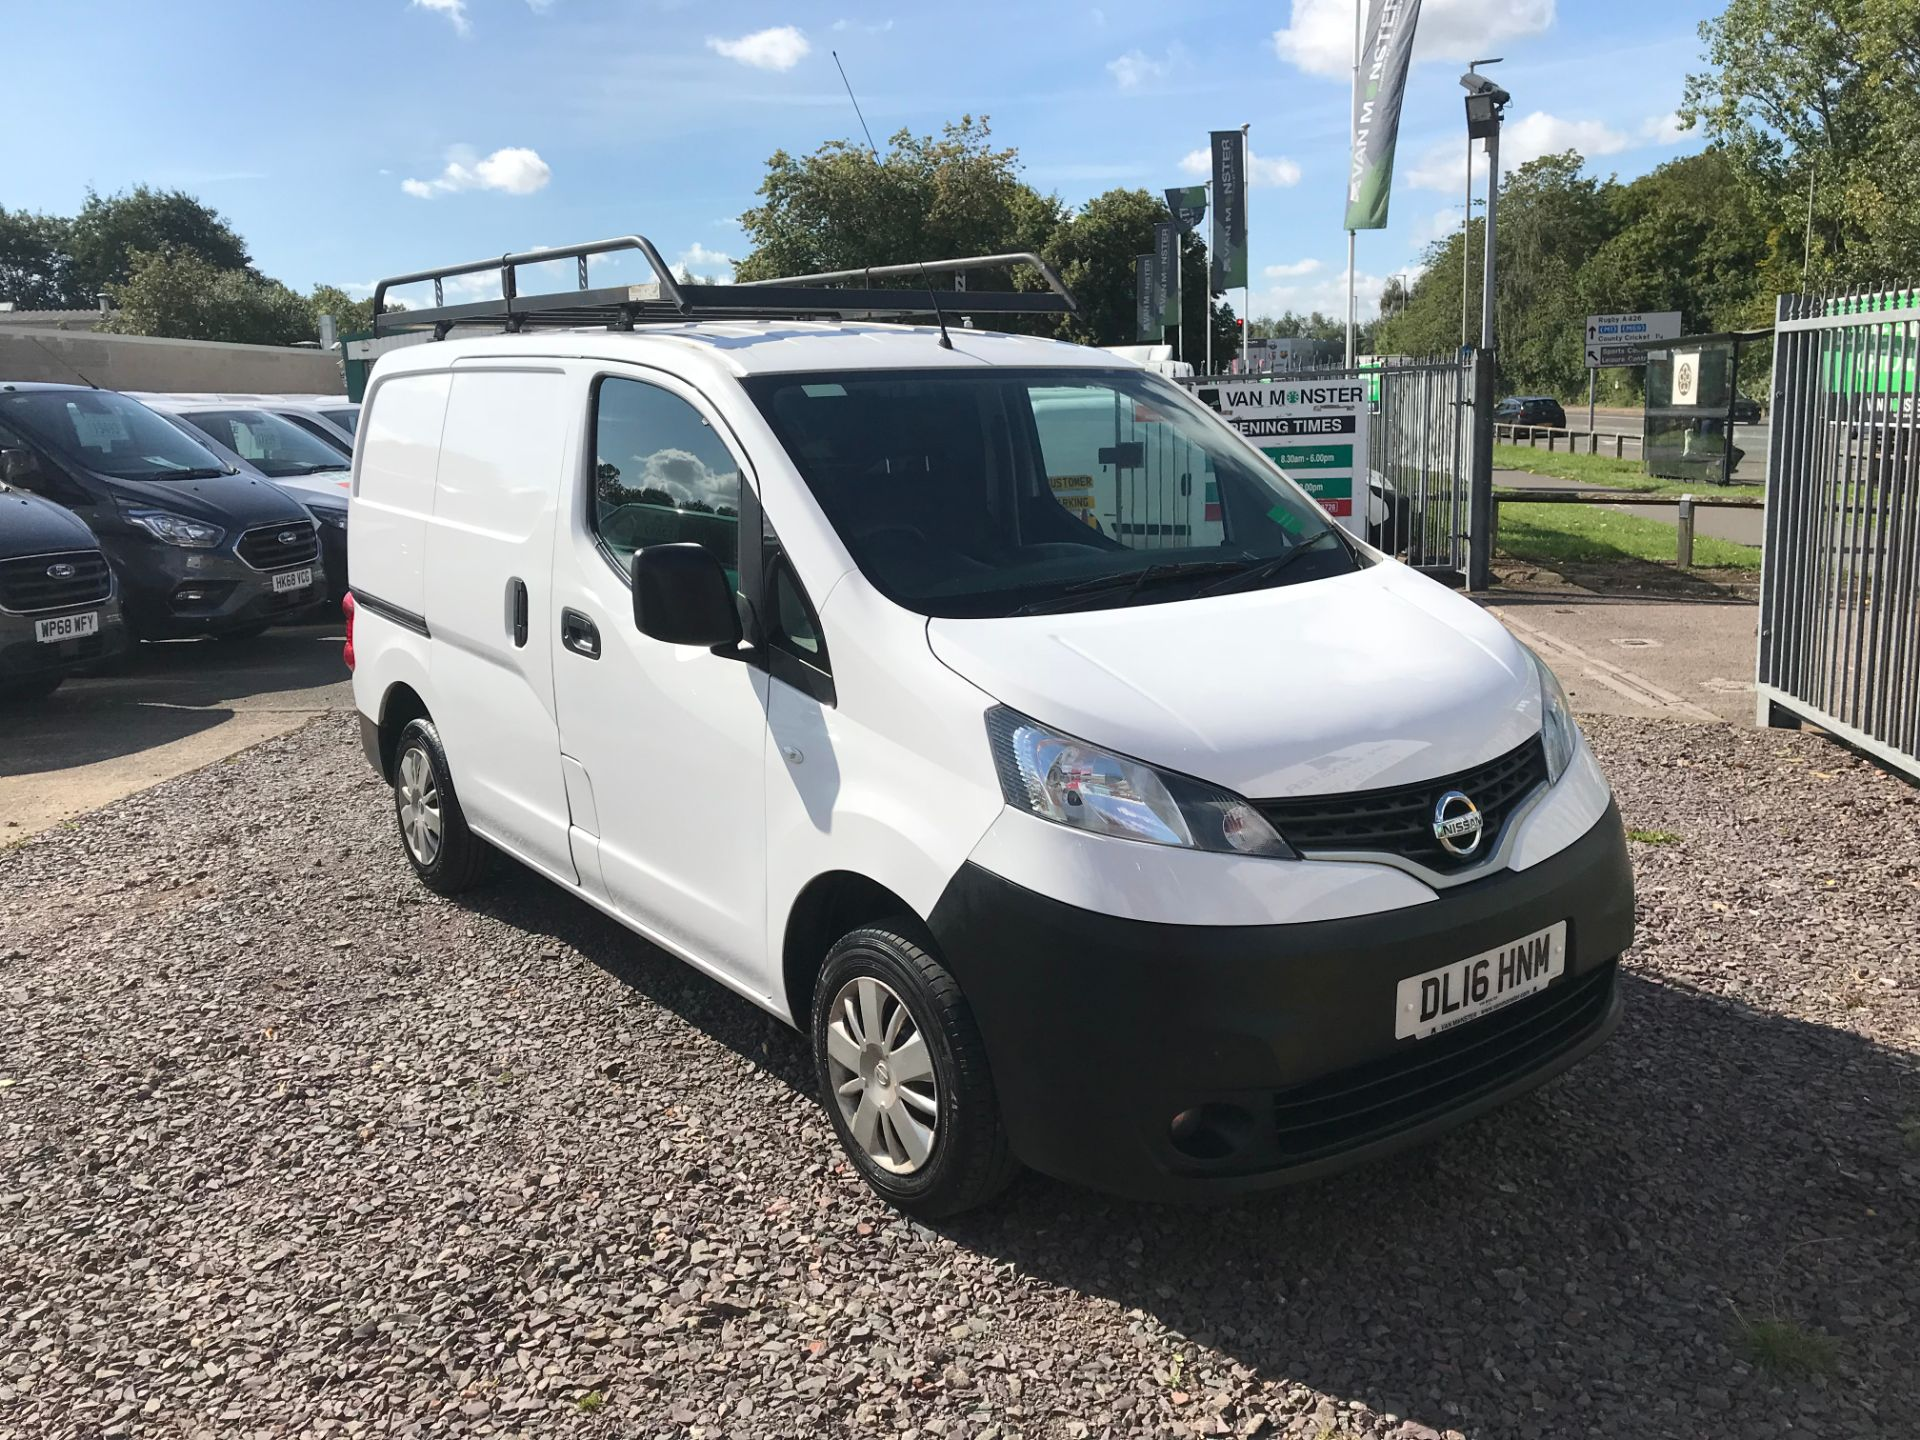 2016 Nissan Nv200 1.5 DCI ACCENTA EURO 5 (DL16HNM)